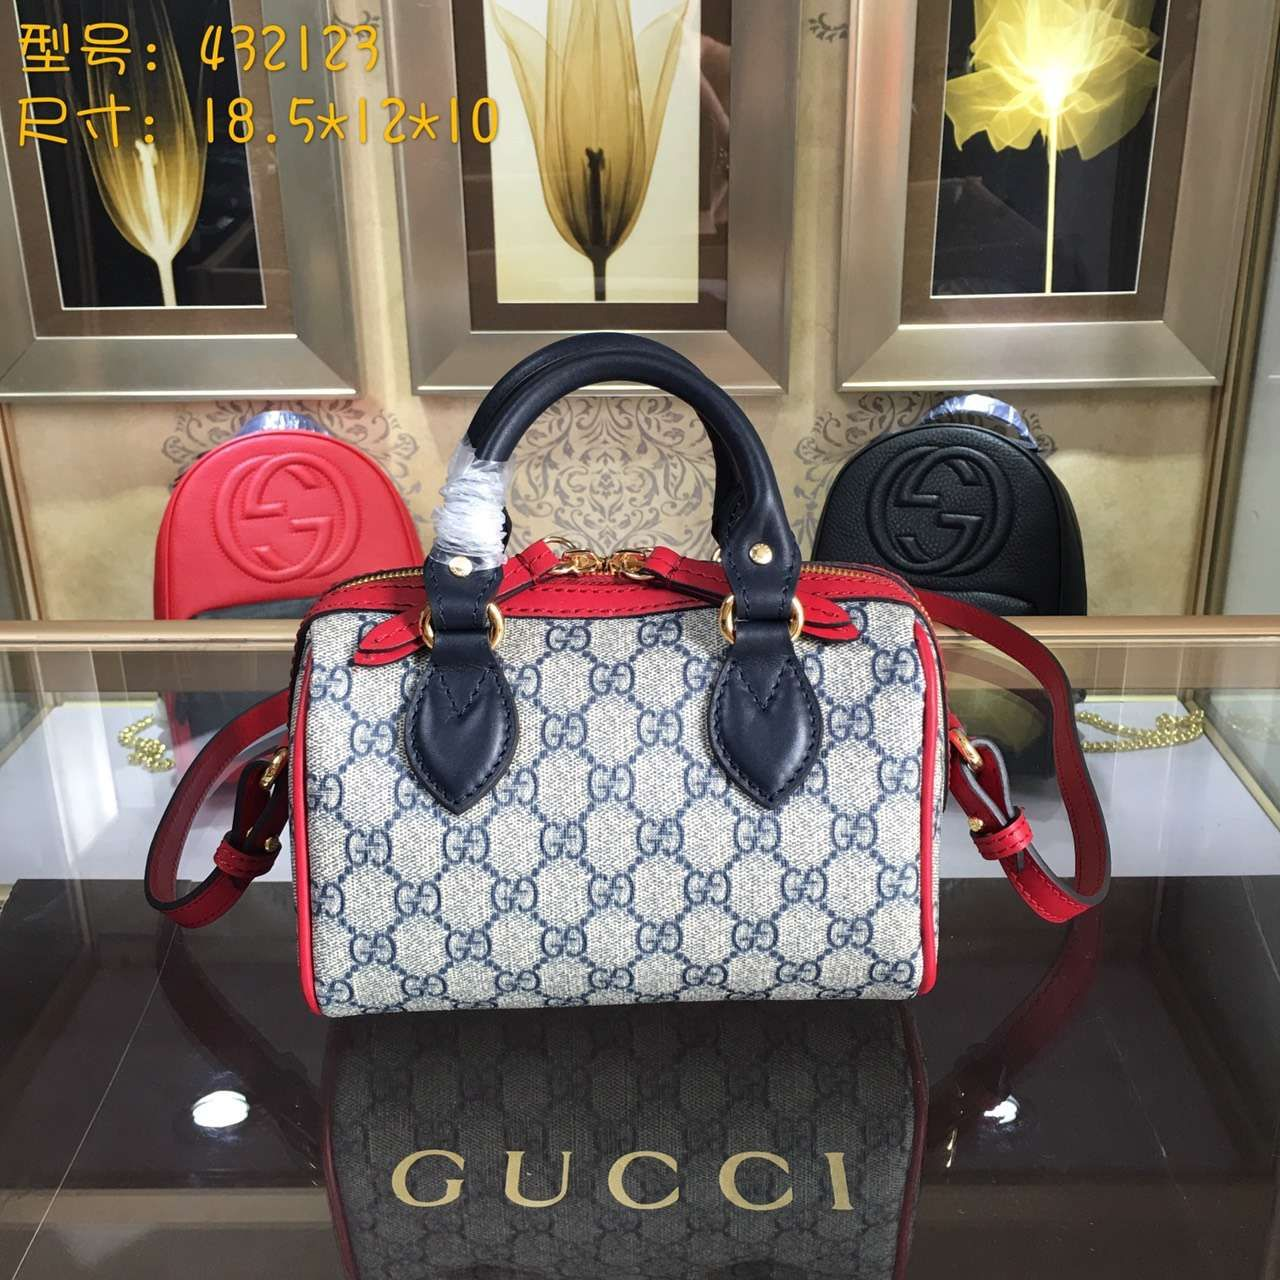 gucci Bag, ID : 50290(FORSALE:a@yybags.com), buy gucci shoes online, gucci trolley backpack, gucci com usa sale, gucci stock, black gucci wallet, gucci hobo bags, gucci key wallet, guicci outlet, gucci sale 2016, gucci italian leather handbags, gucci fashion bags, gucci officiel, gucci suit bag, cheap gucci bag, gucci best laptop backpack #gucciBag #gucci #gucci #headquarters